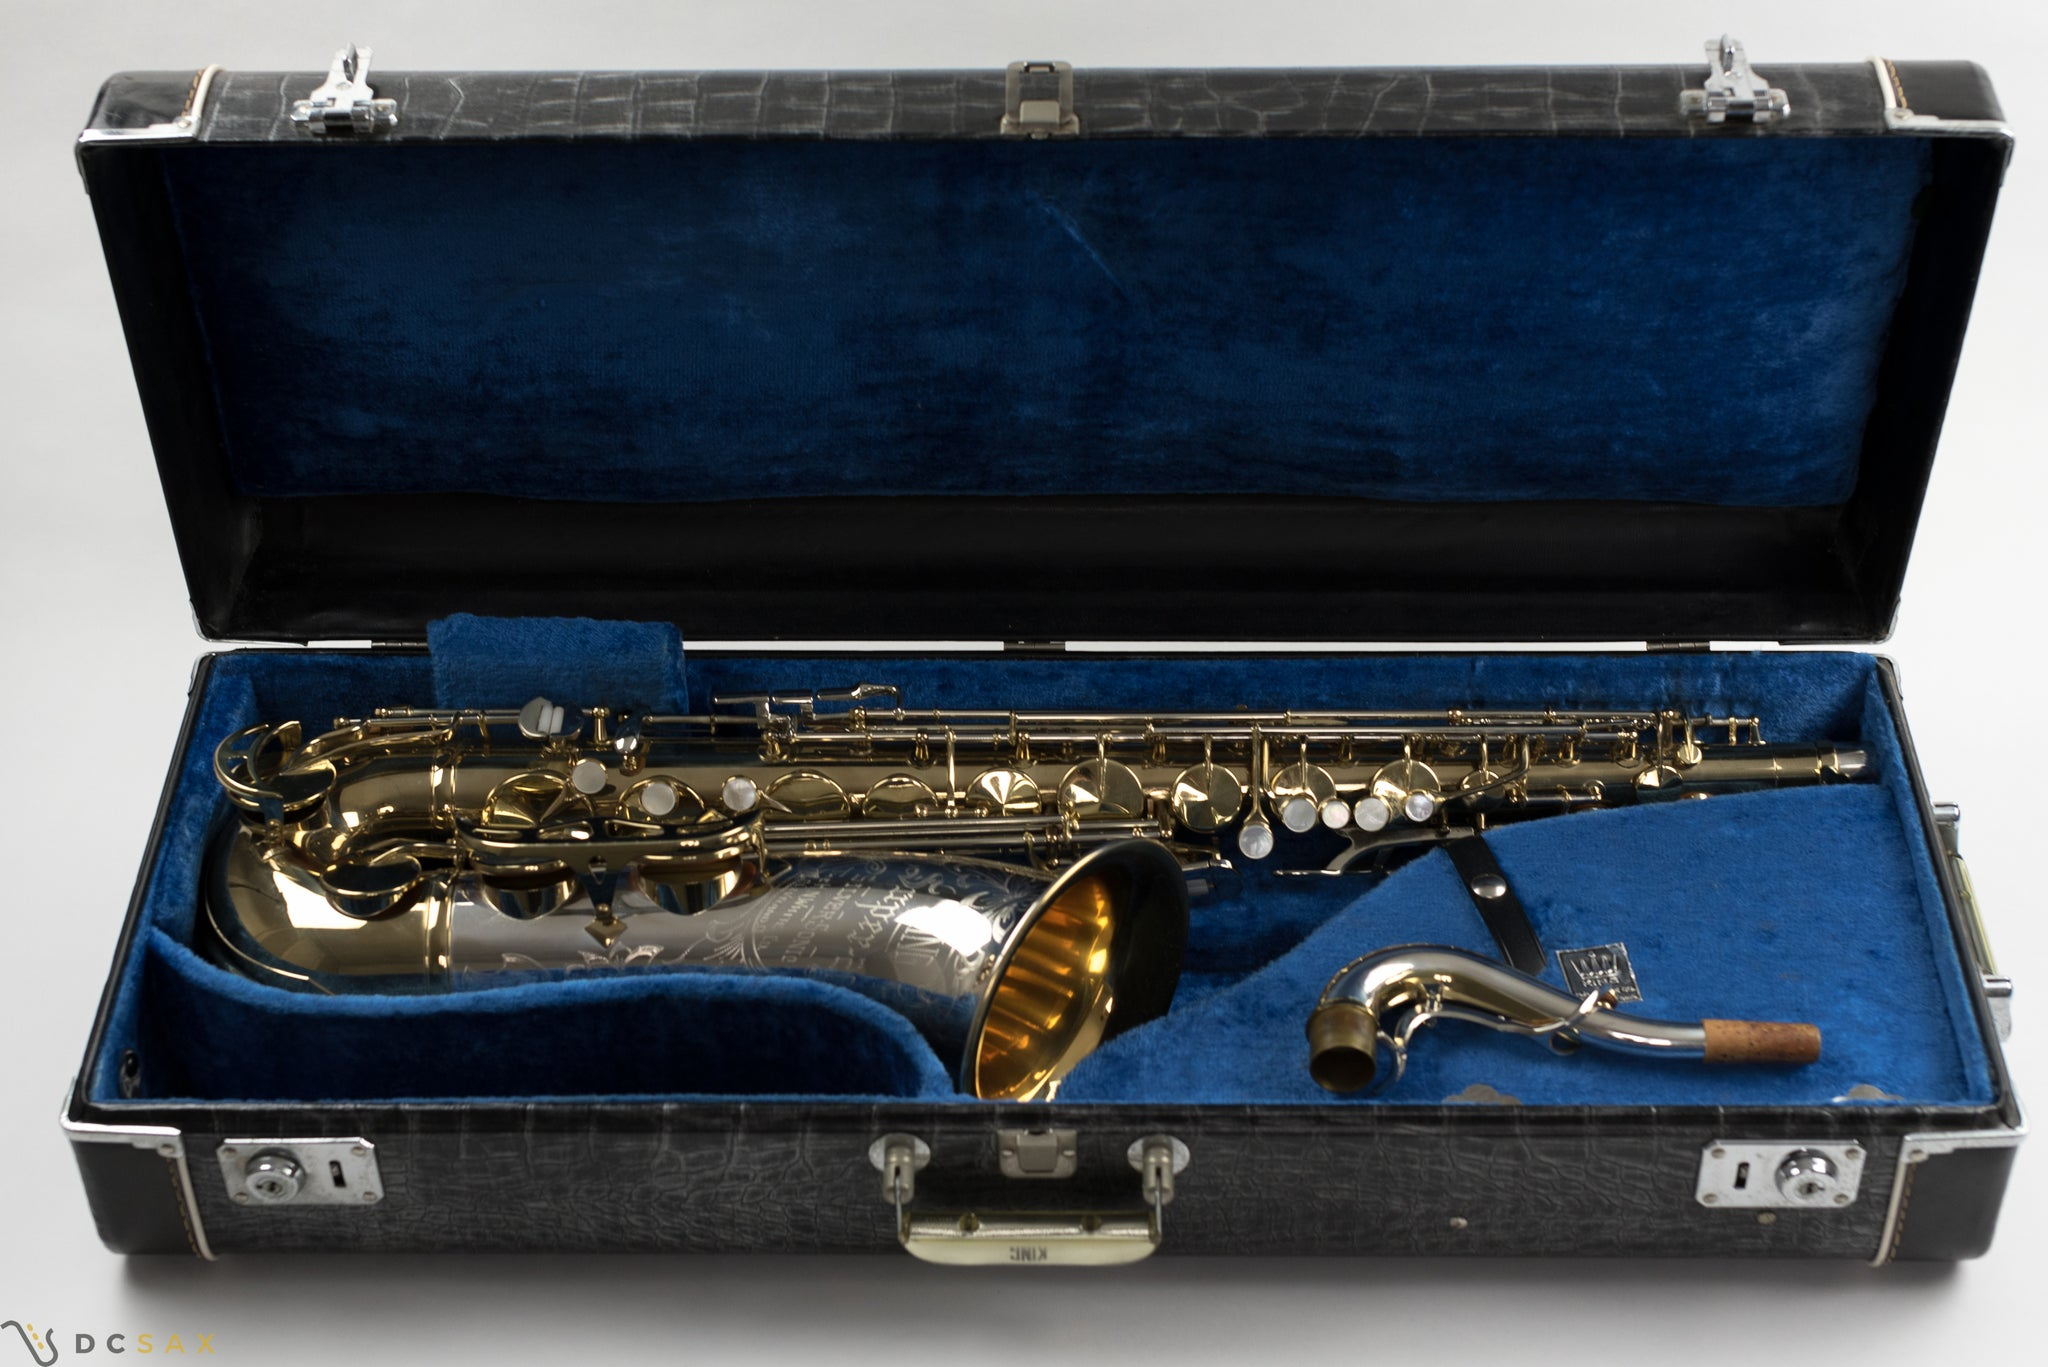 King Super 20 Tenor Saxophone, Silver Sonic, Cleveland, NEAR MINT, WOW